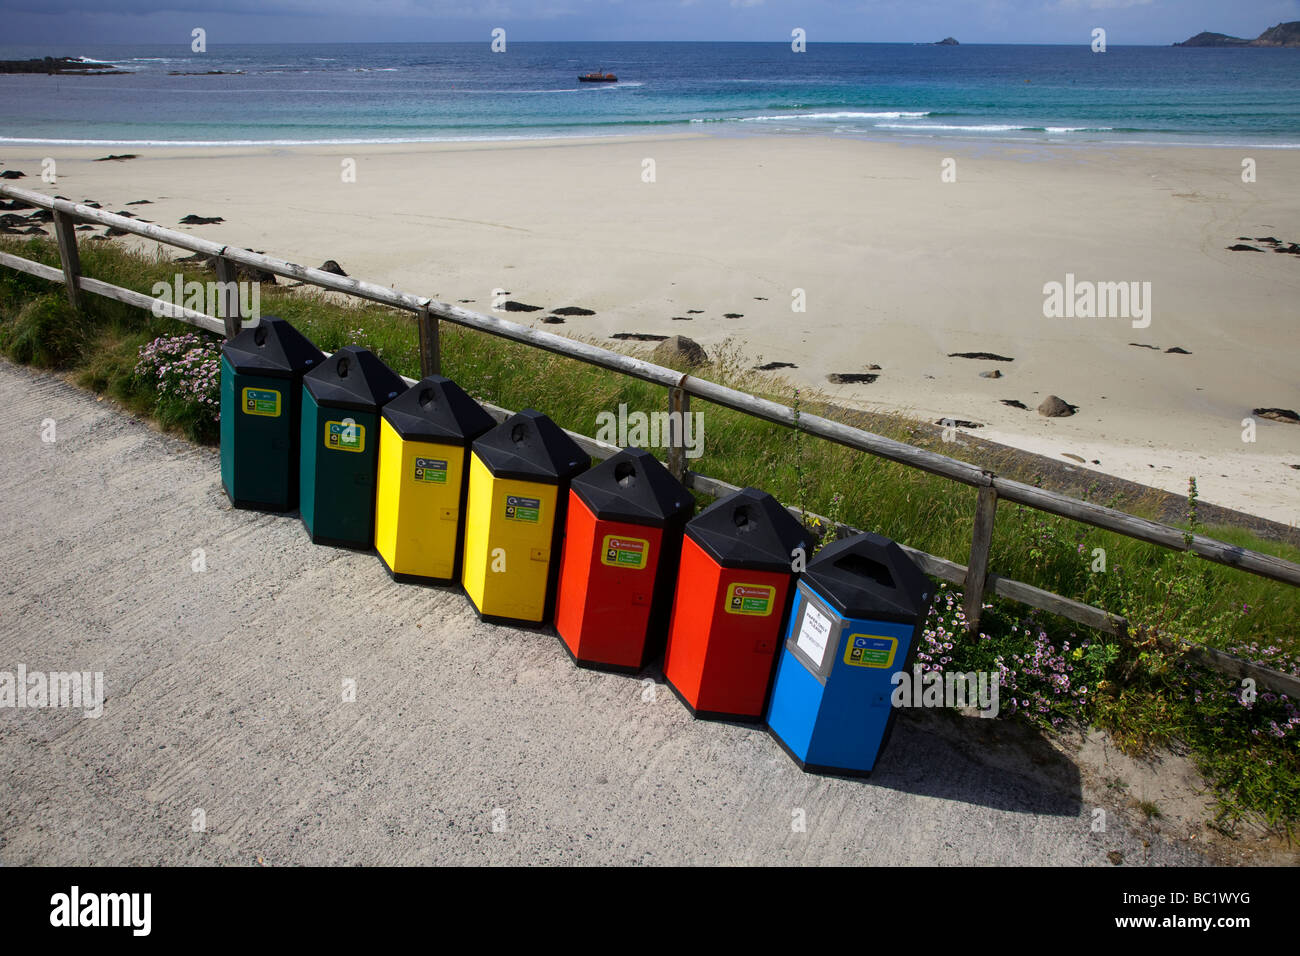 Various Council Litter Bins for Recycling refuse, rubbish, enviornmental waste at Sennen Cove beach on the Land's - Stock Image